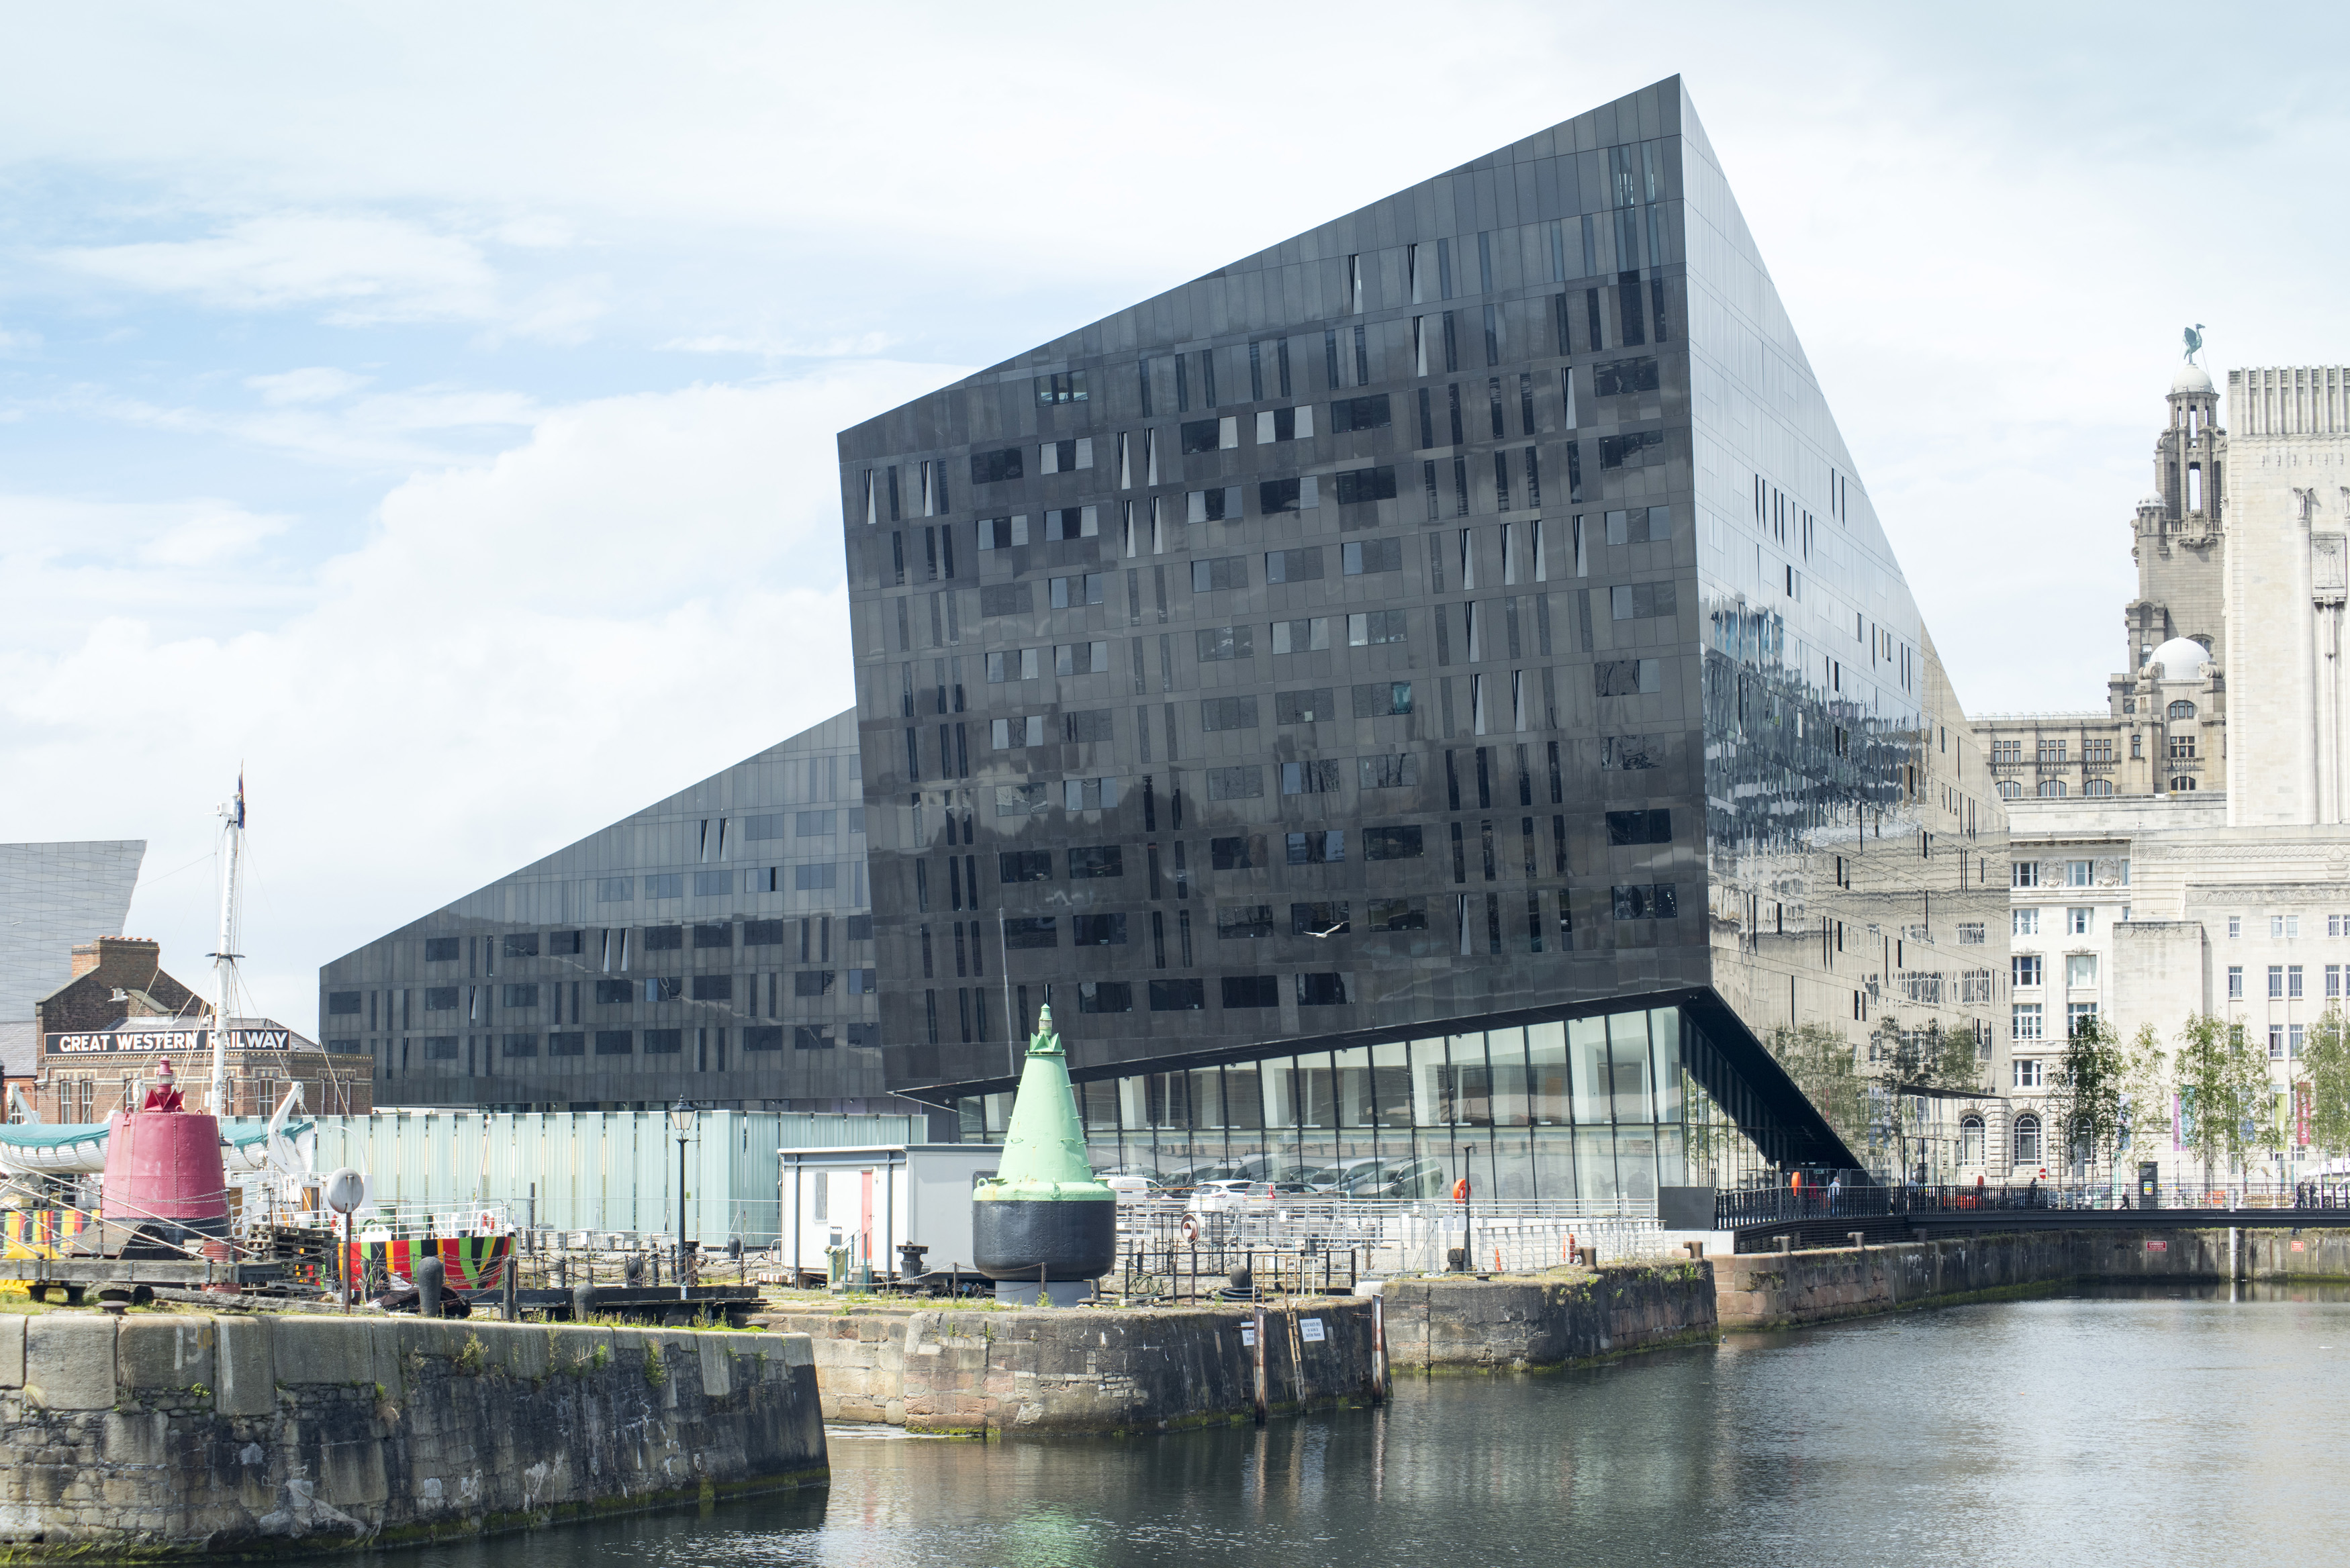 Rhombus shaped black steel and glass building on Mann Island in Liverpool, United Kingdom